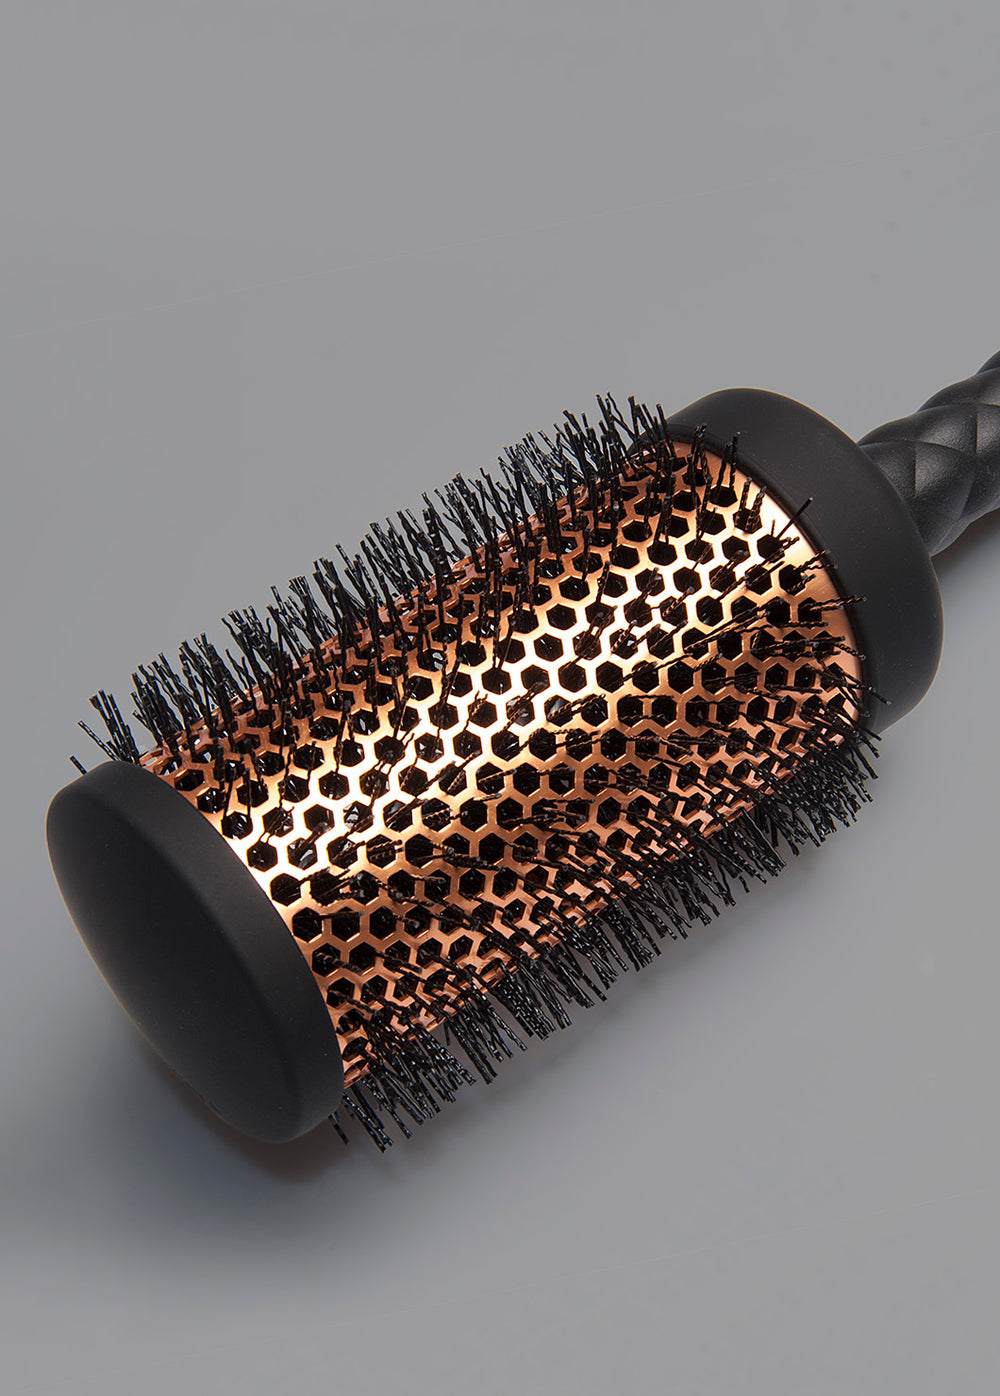 Fromm Pro Professional Salon Copper Round Hair Brush